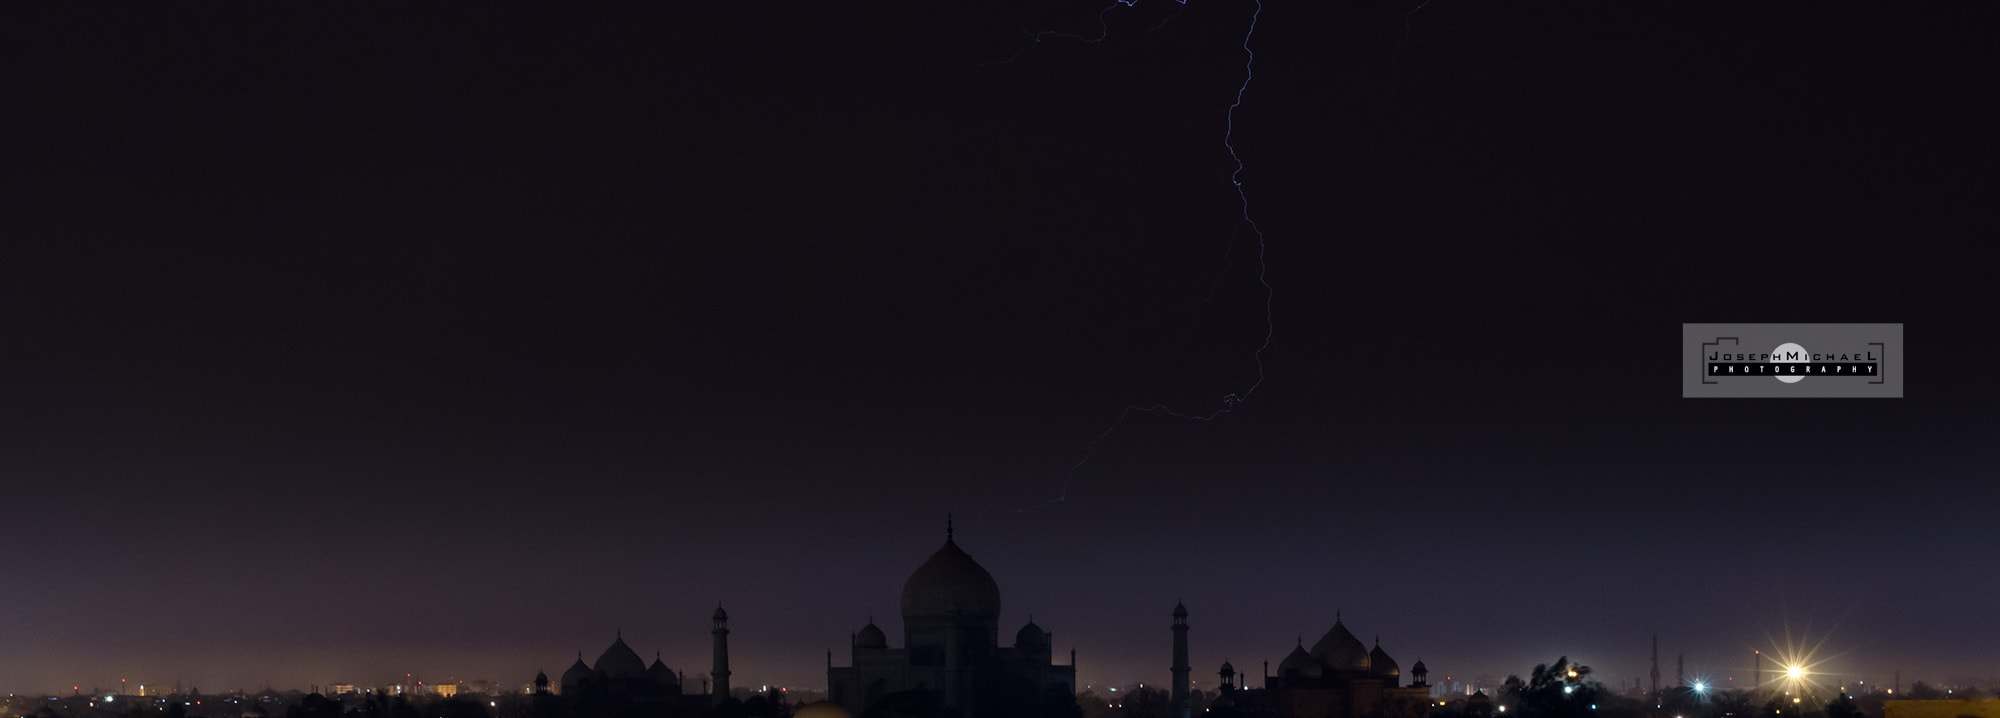 Lightning photo with the Taj Mahal